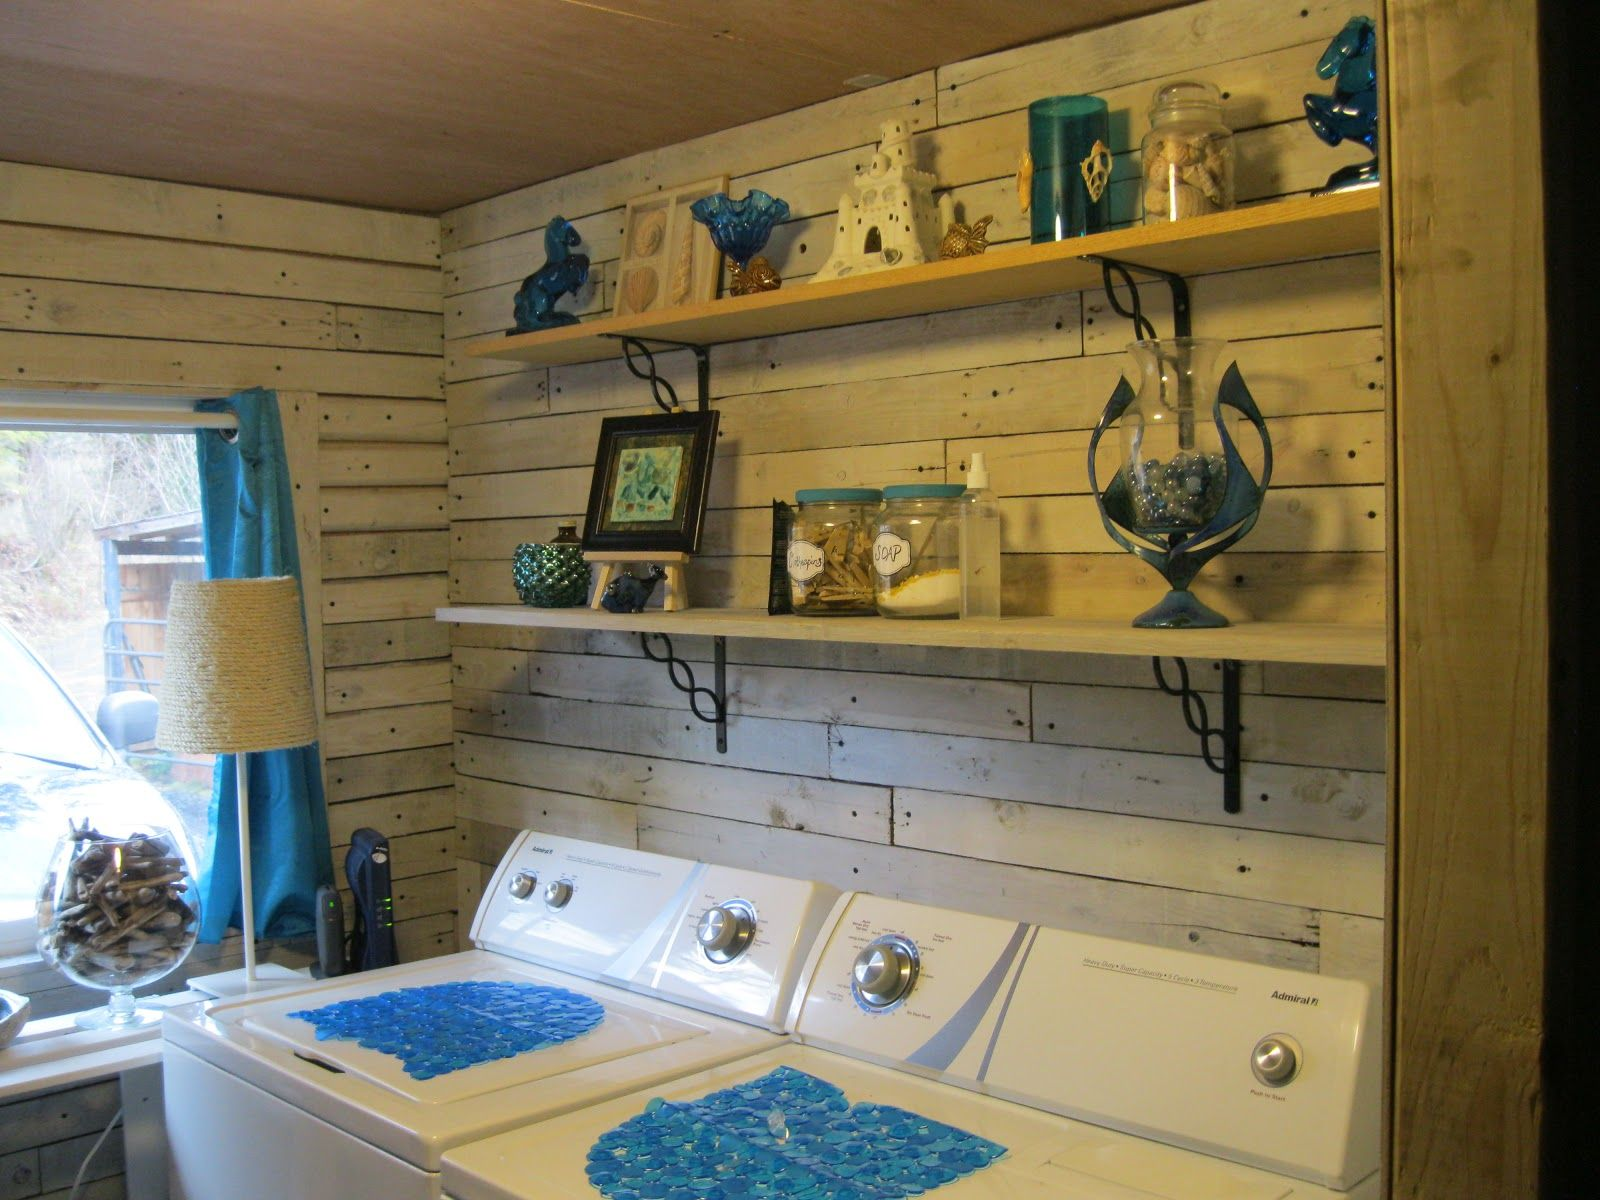 Laundry room makeover ideas for your mobile home laundry rooms laundry and room Home redesign